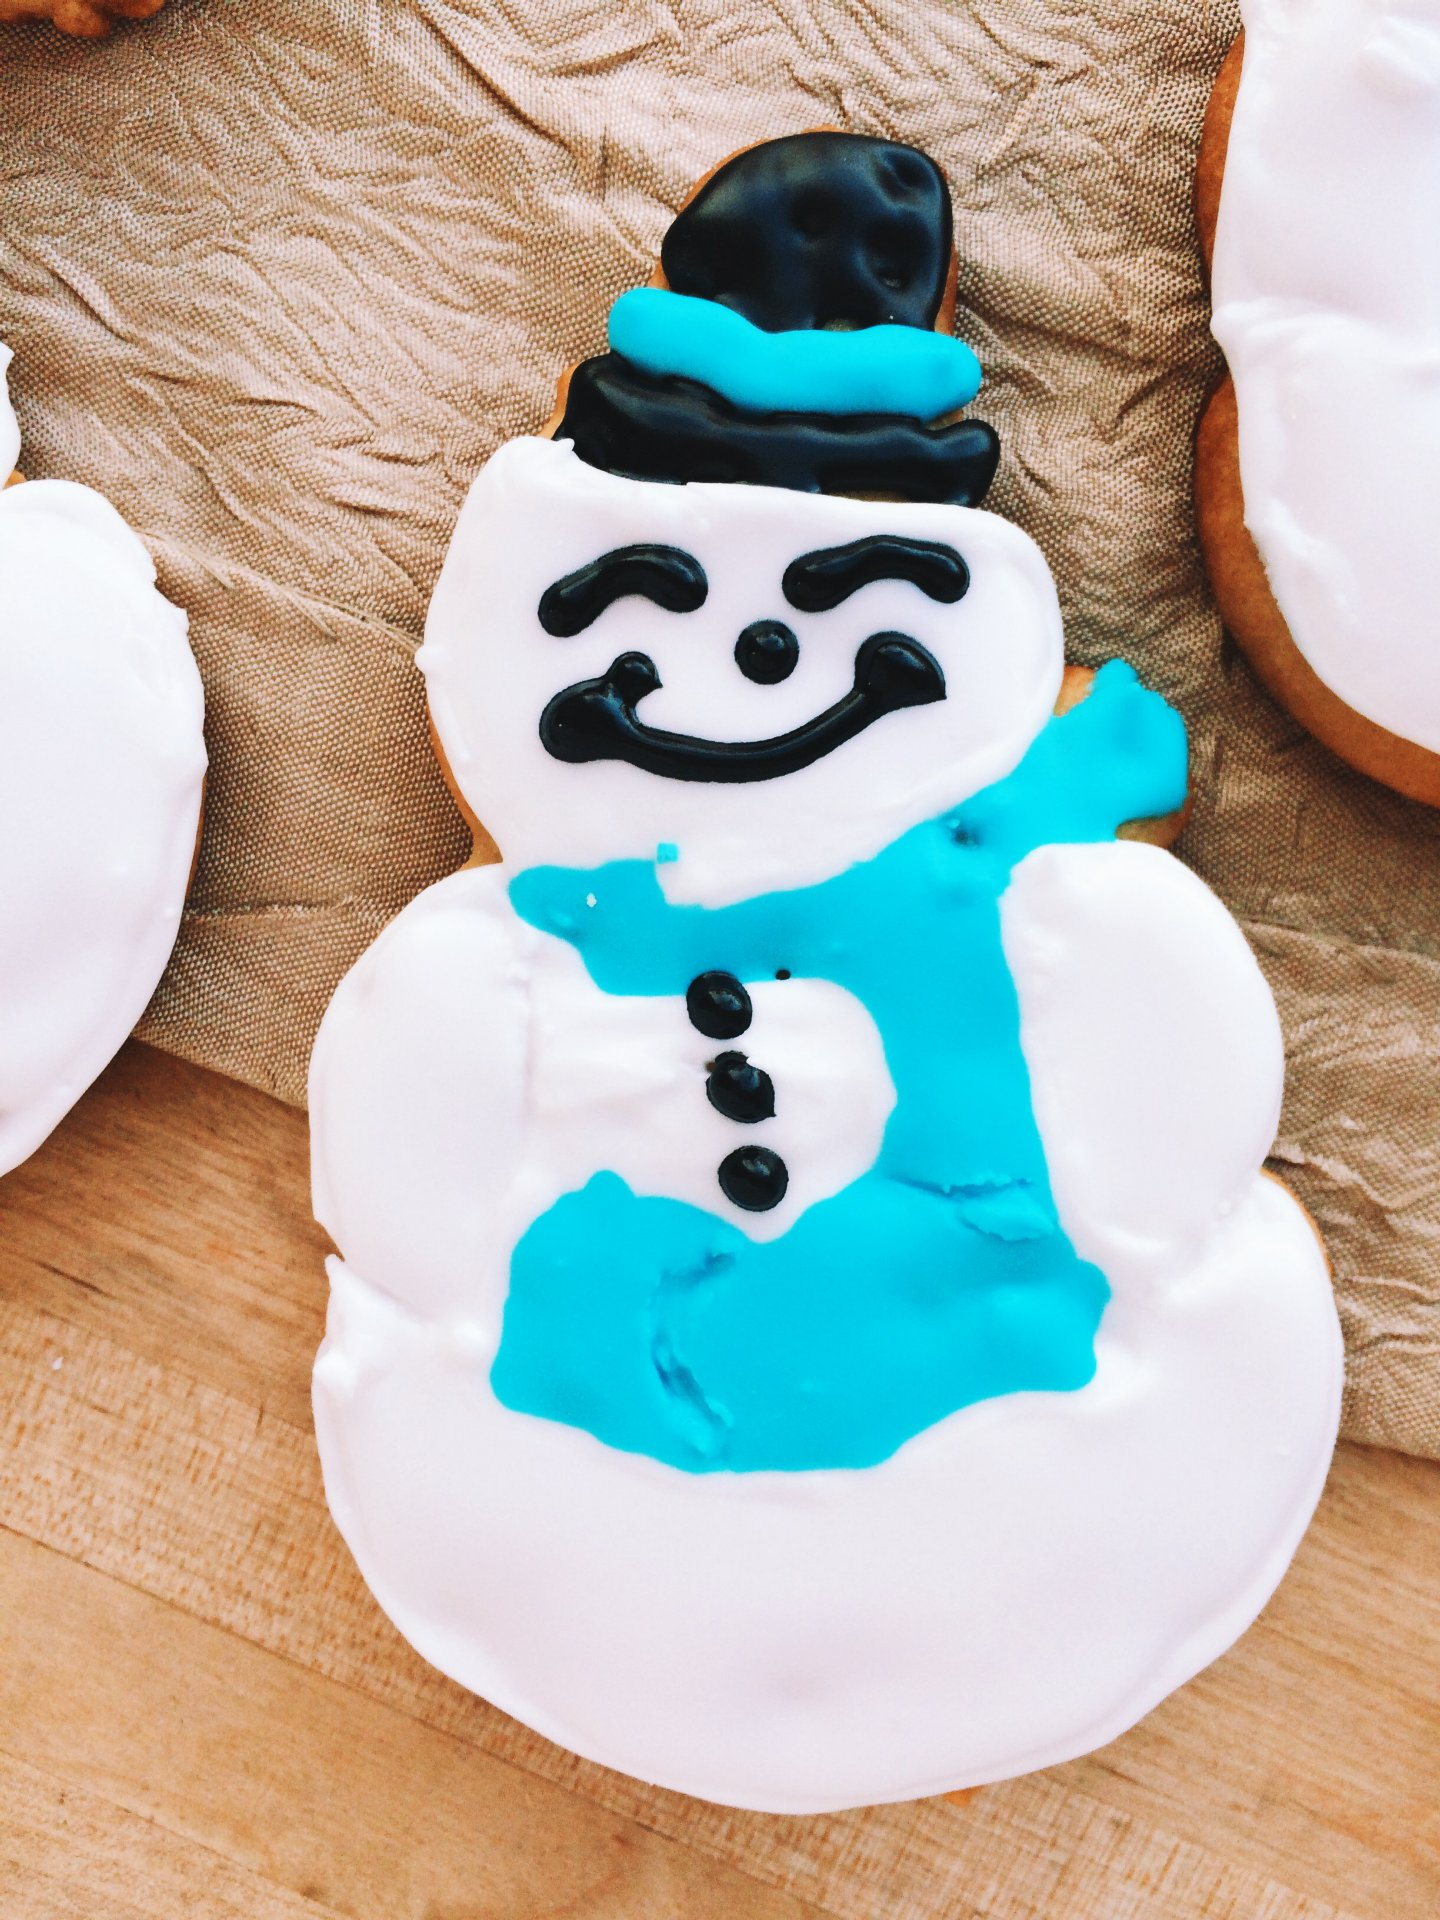 Snowmageddon 2015 Snowman Cookies with Gramma's Cutters {Giveaway}